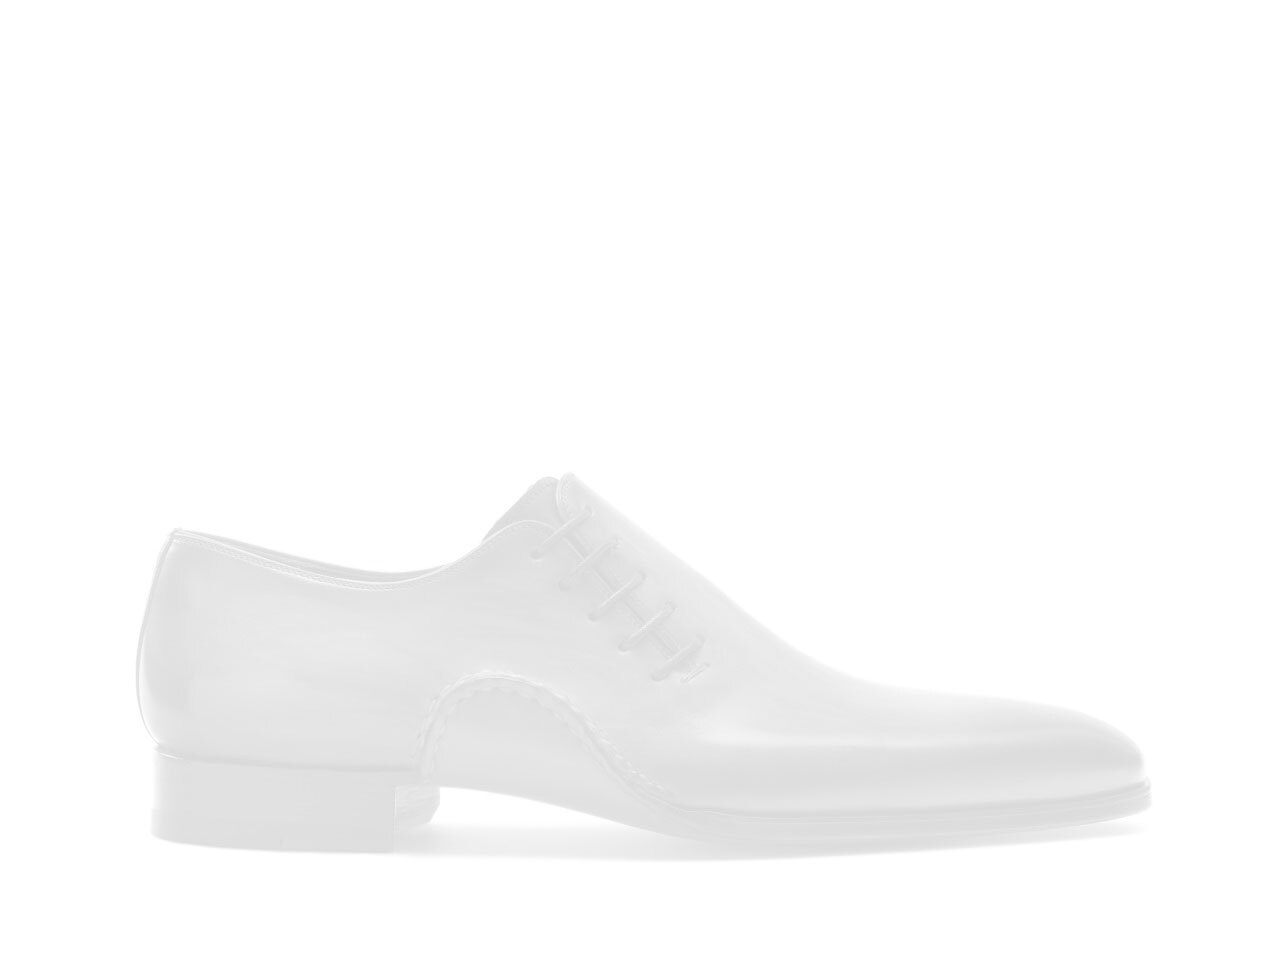 Side view of the Magnanni Elonso Lo Tabaco Men's Sneakers